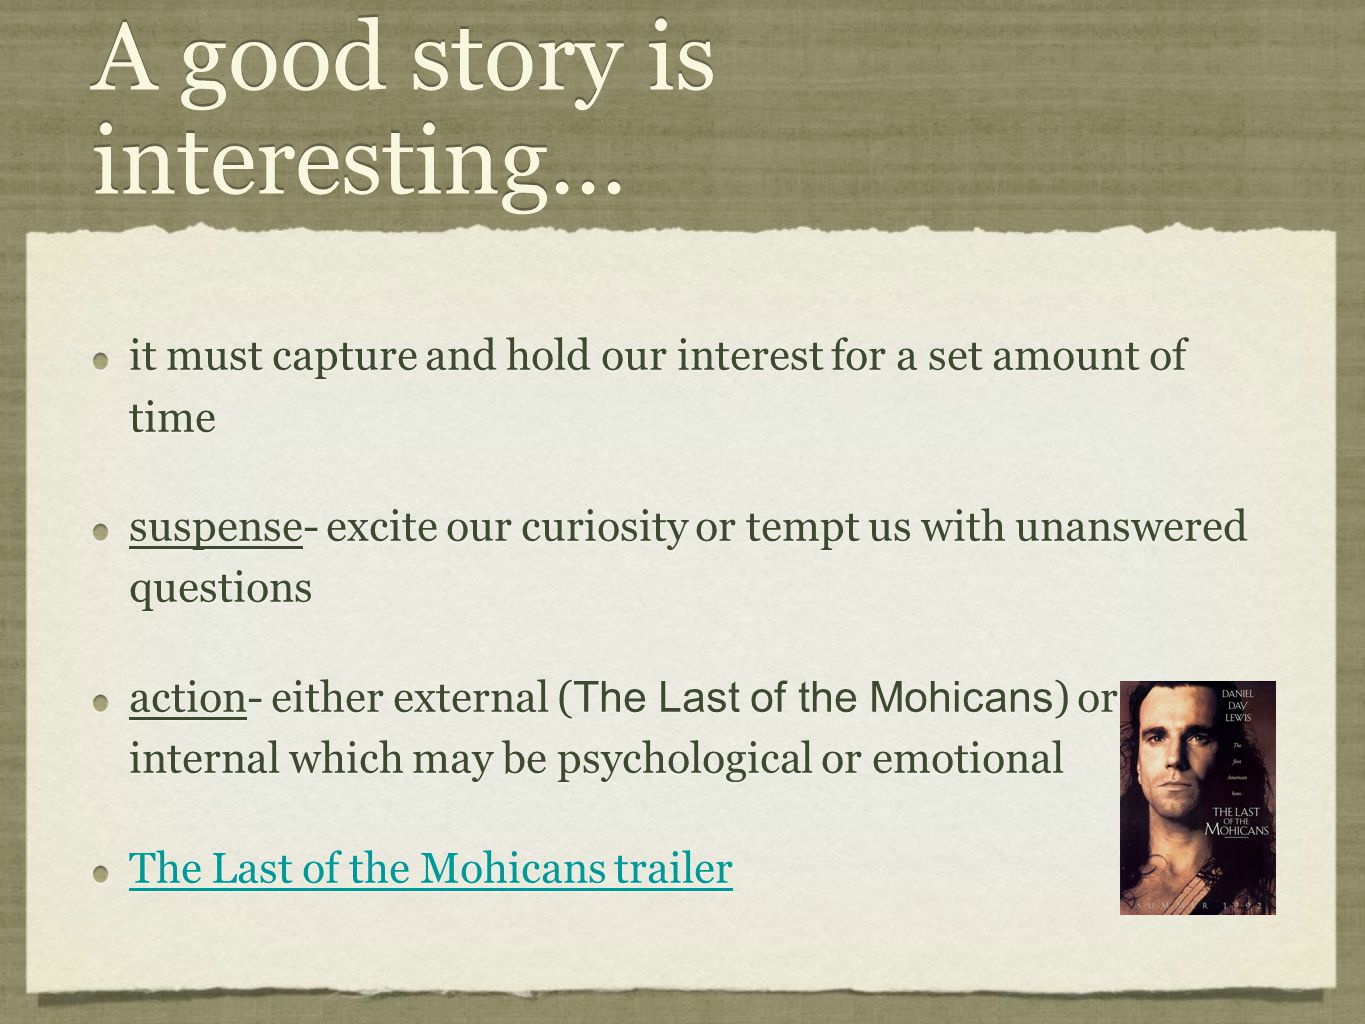 A good story is interesting...